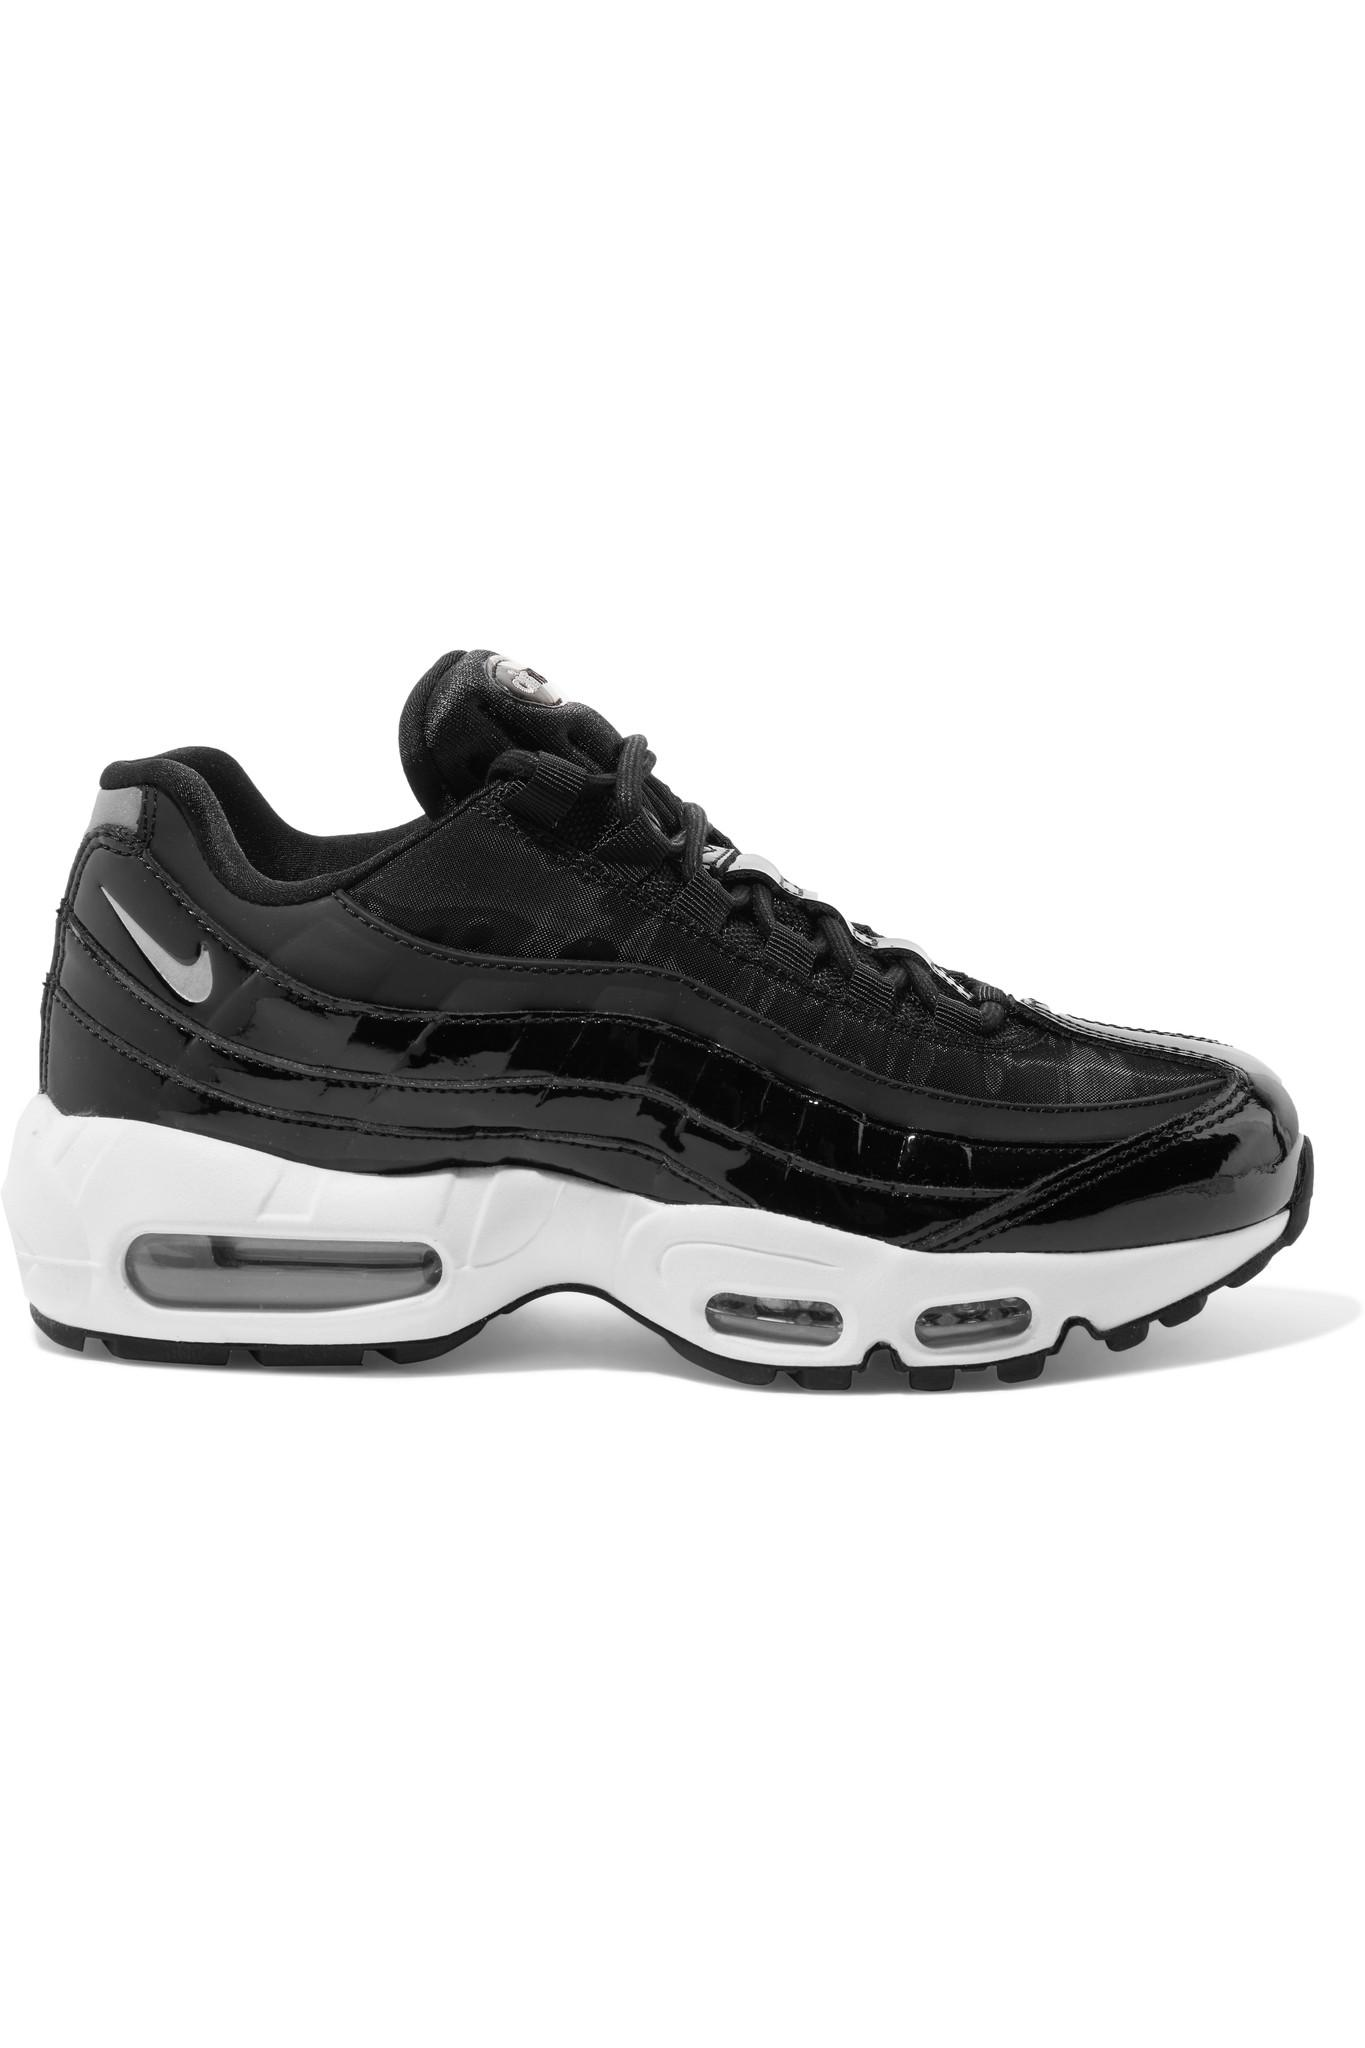 Women's Black Air Max 95 Mesh, Neoprene And Patent leather Trainers